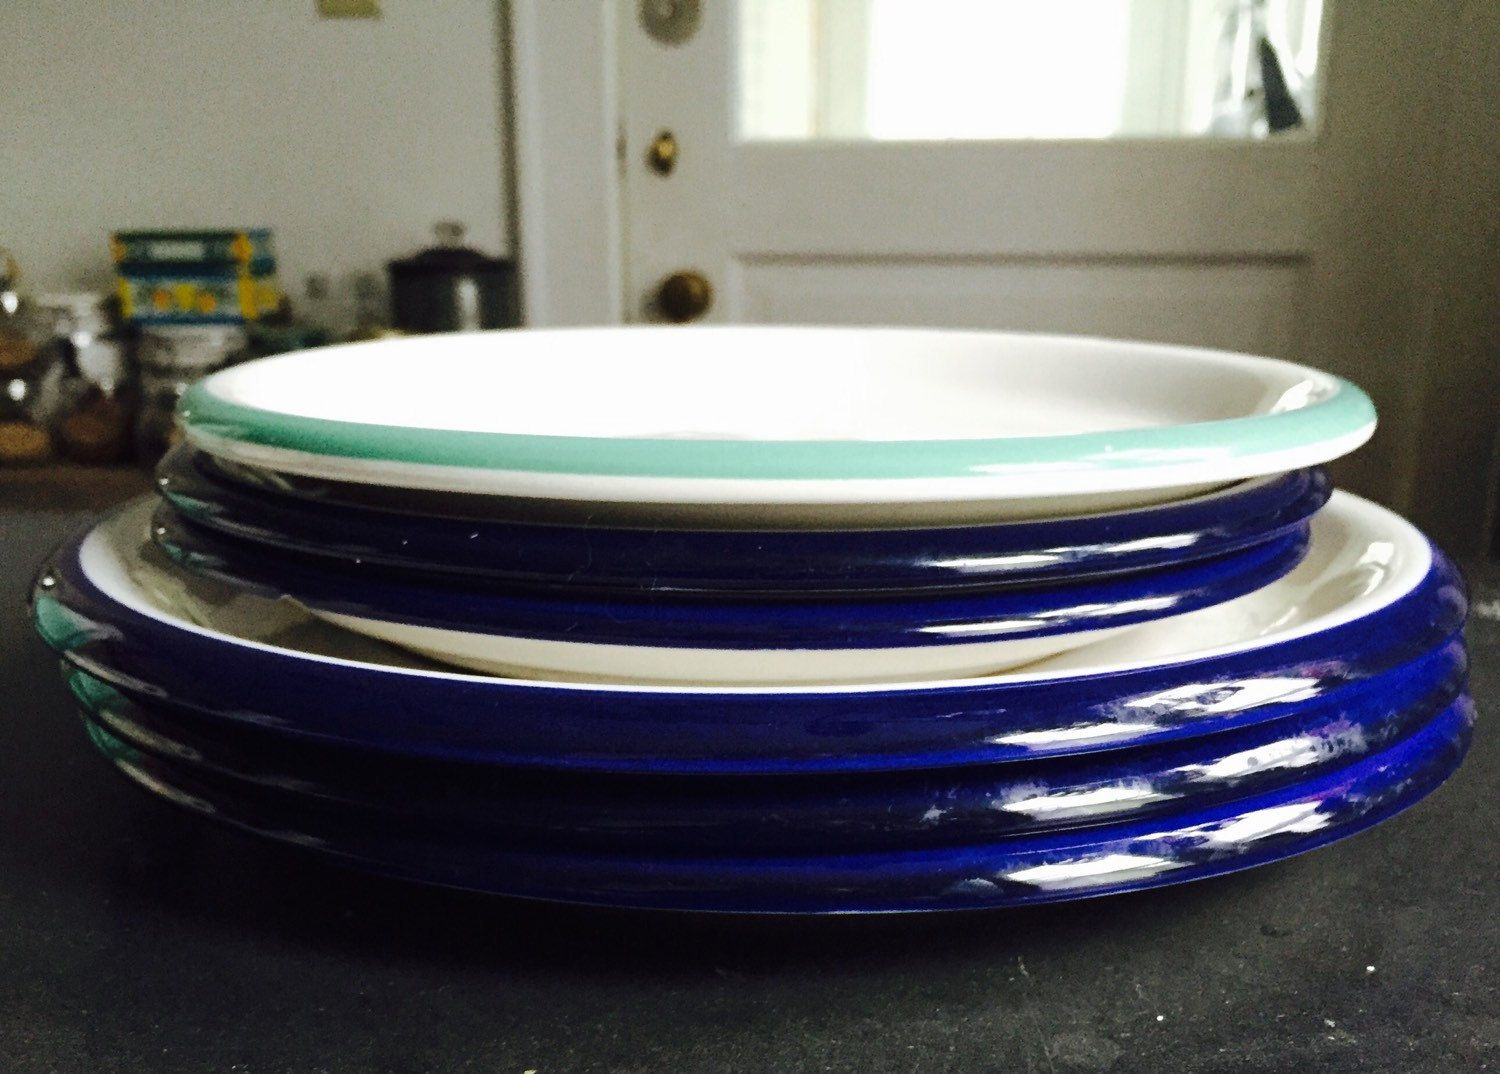 Set of 6 Crown Corning Plates - Indonesia 3 Dinner 3 Salad- Cobalt & Set of 6 Crown Corning Plates - Indonesia 3 Dinner 3 Salad- Cobalt ...